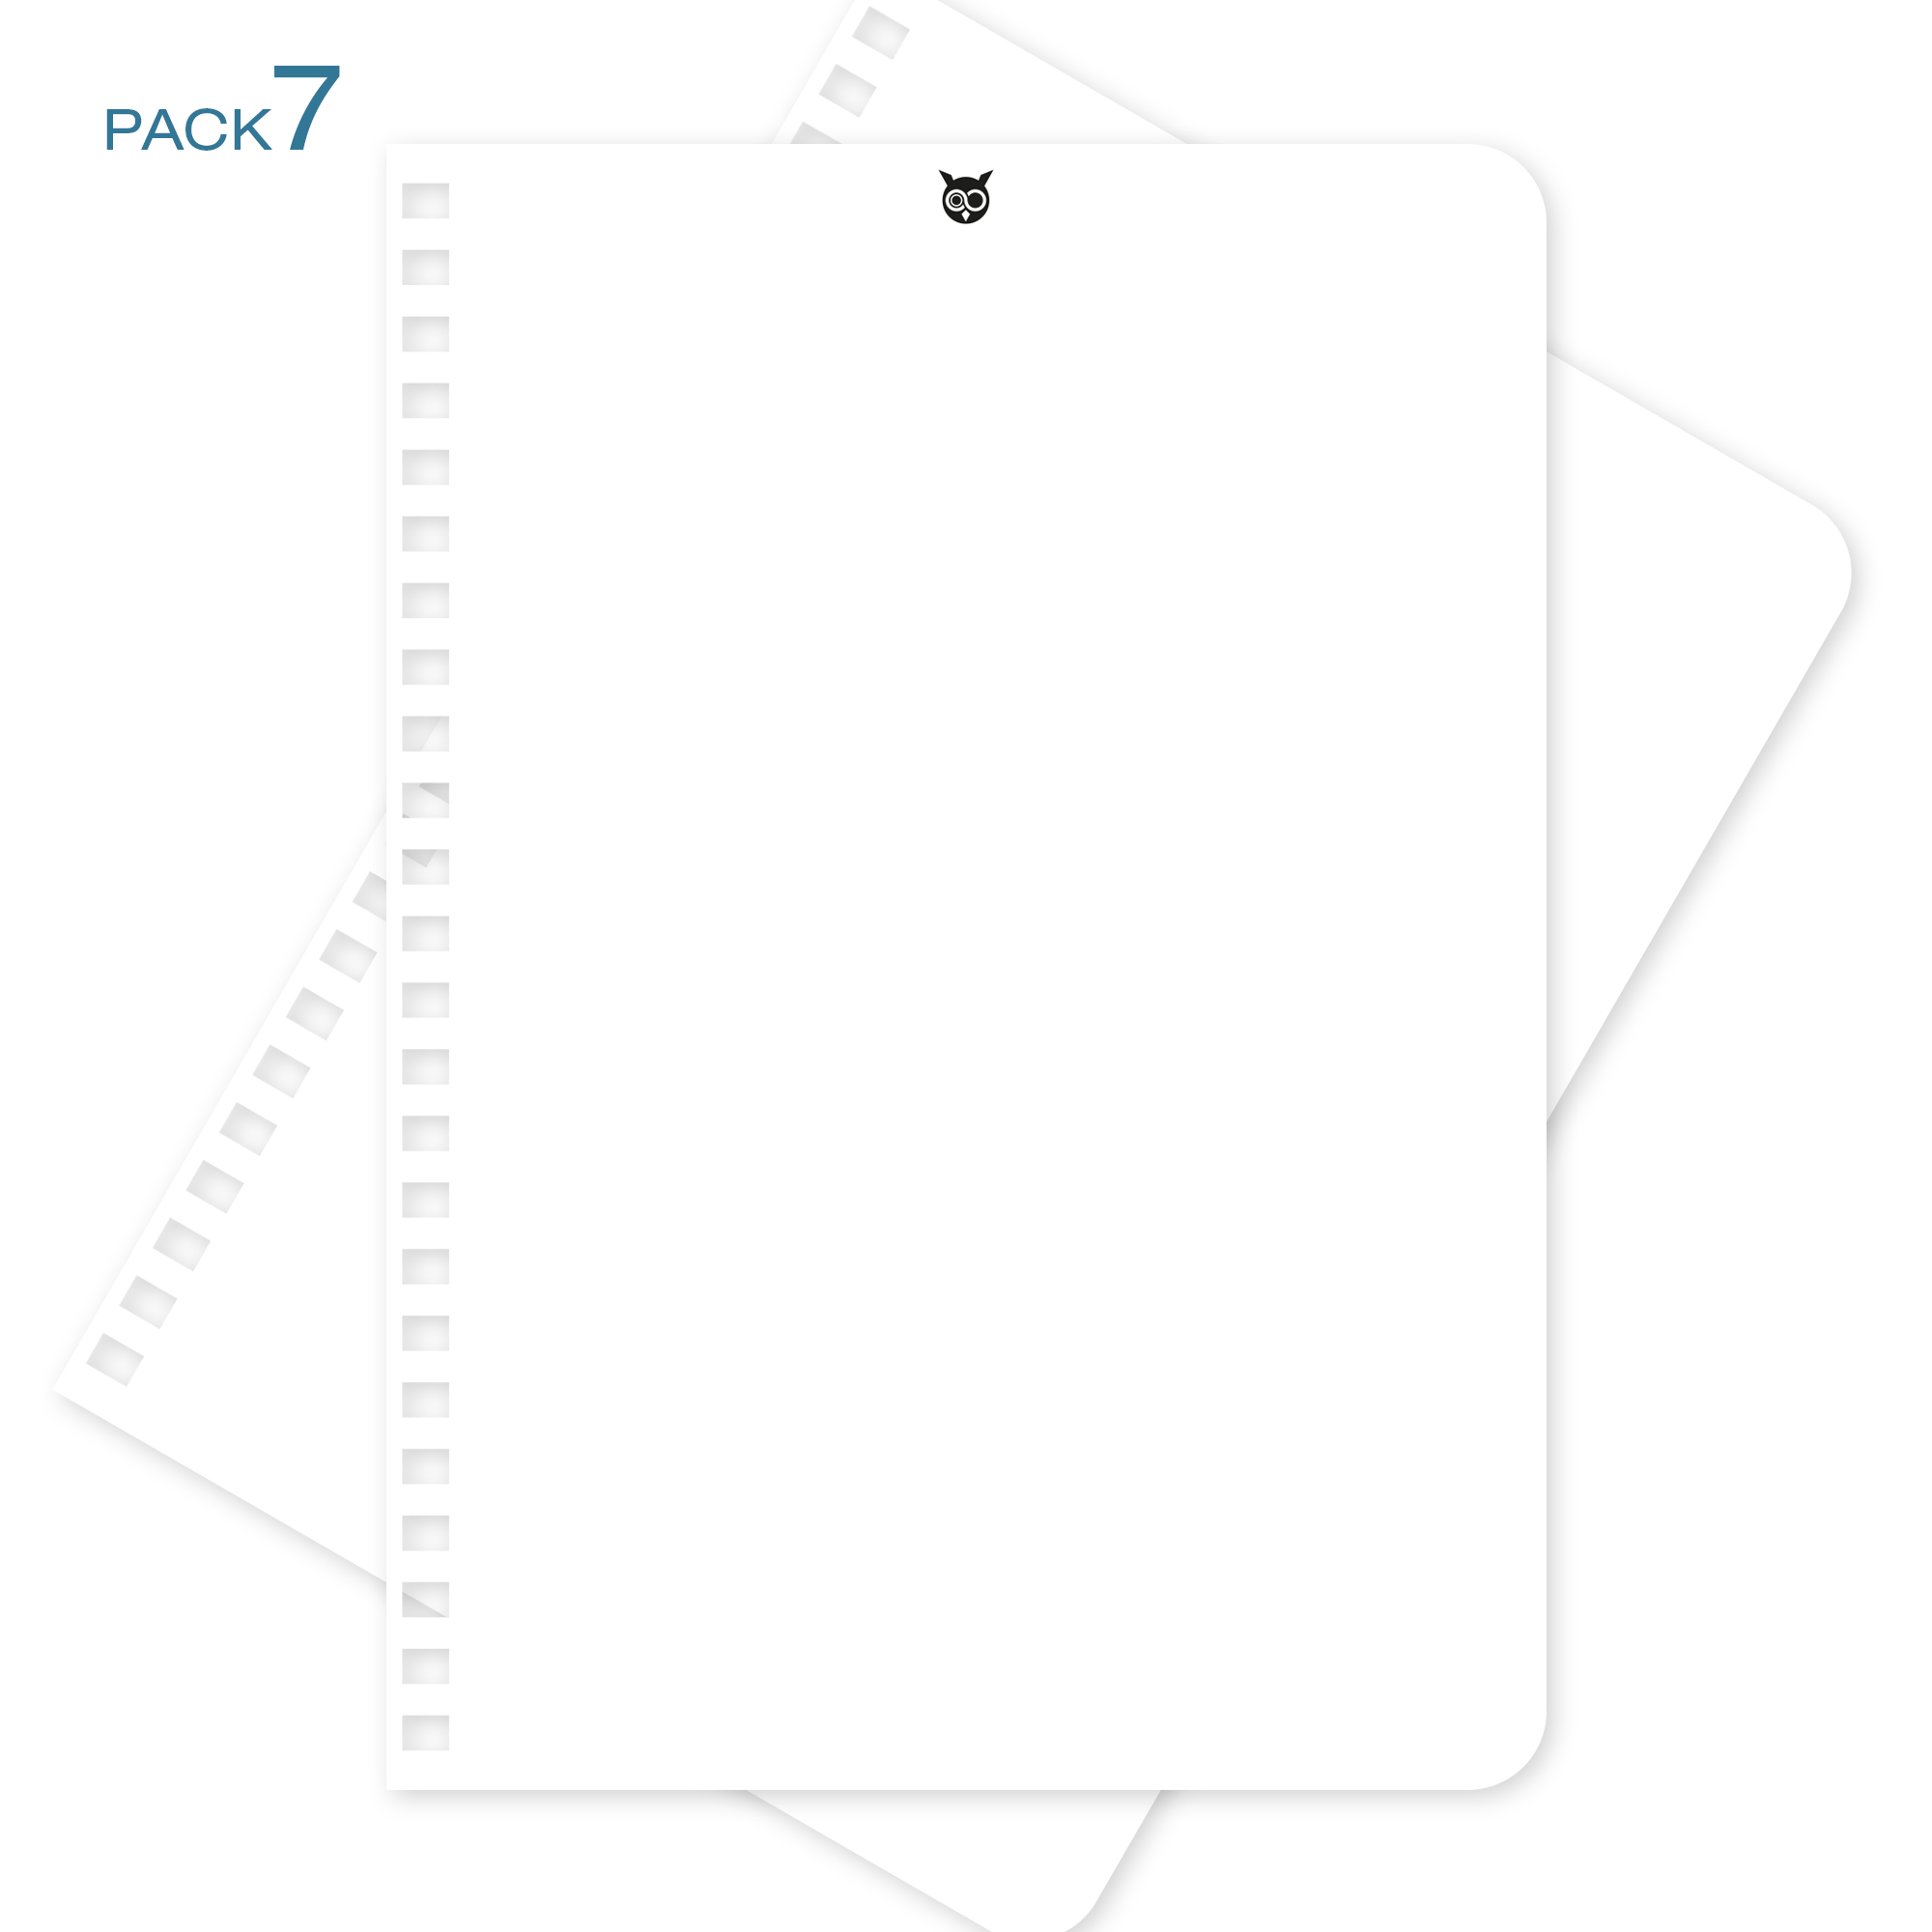 Recharges-A5-pack-7 - Whynote Book Agenda Planner